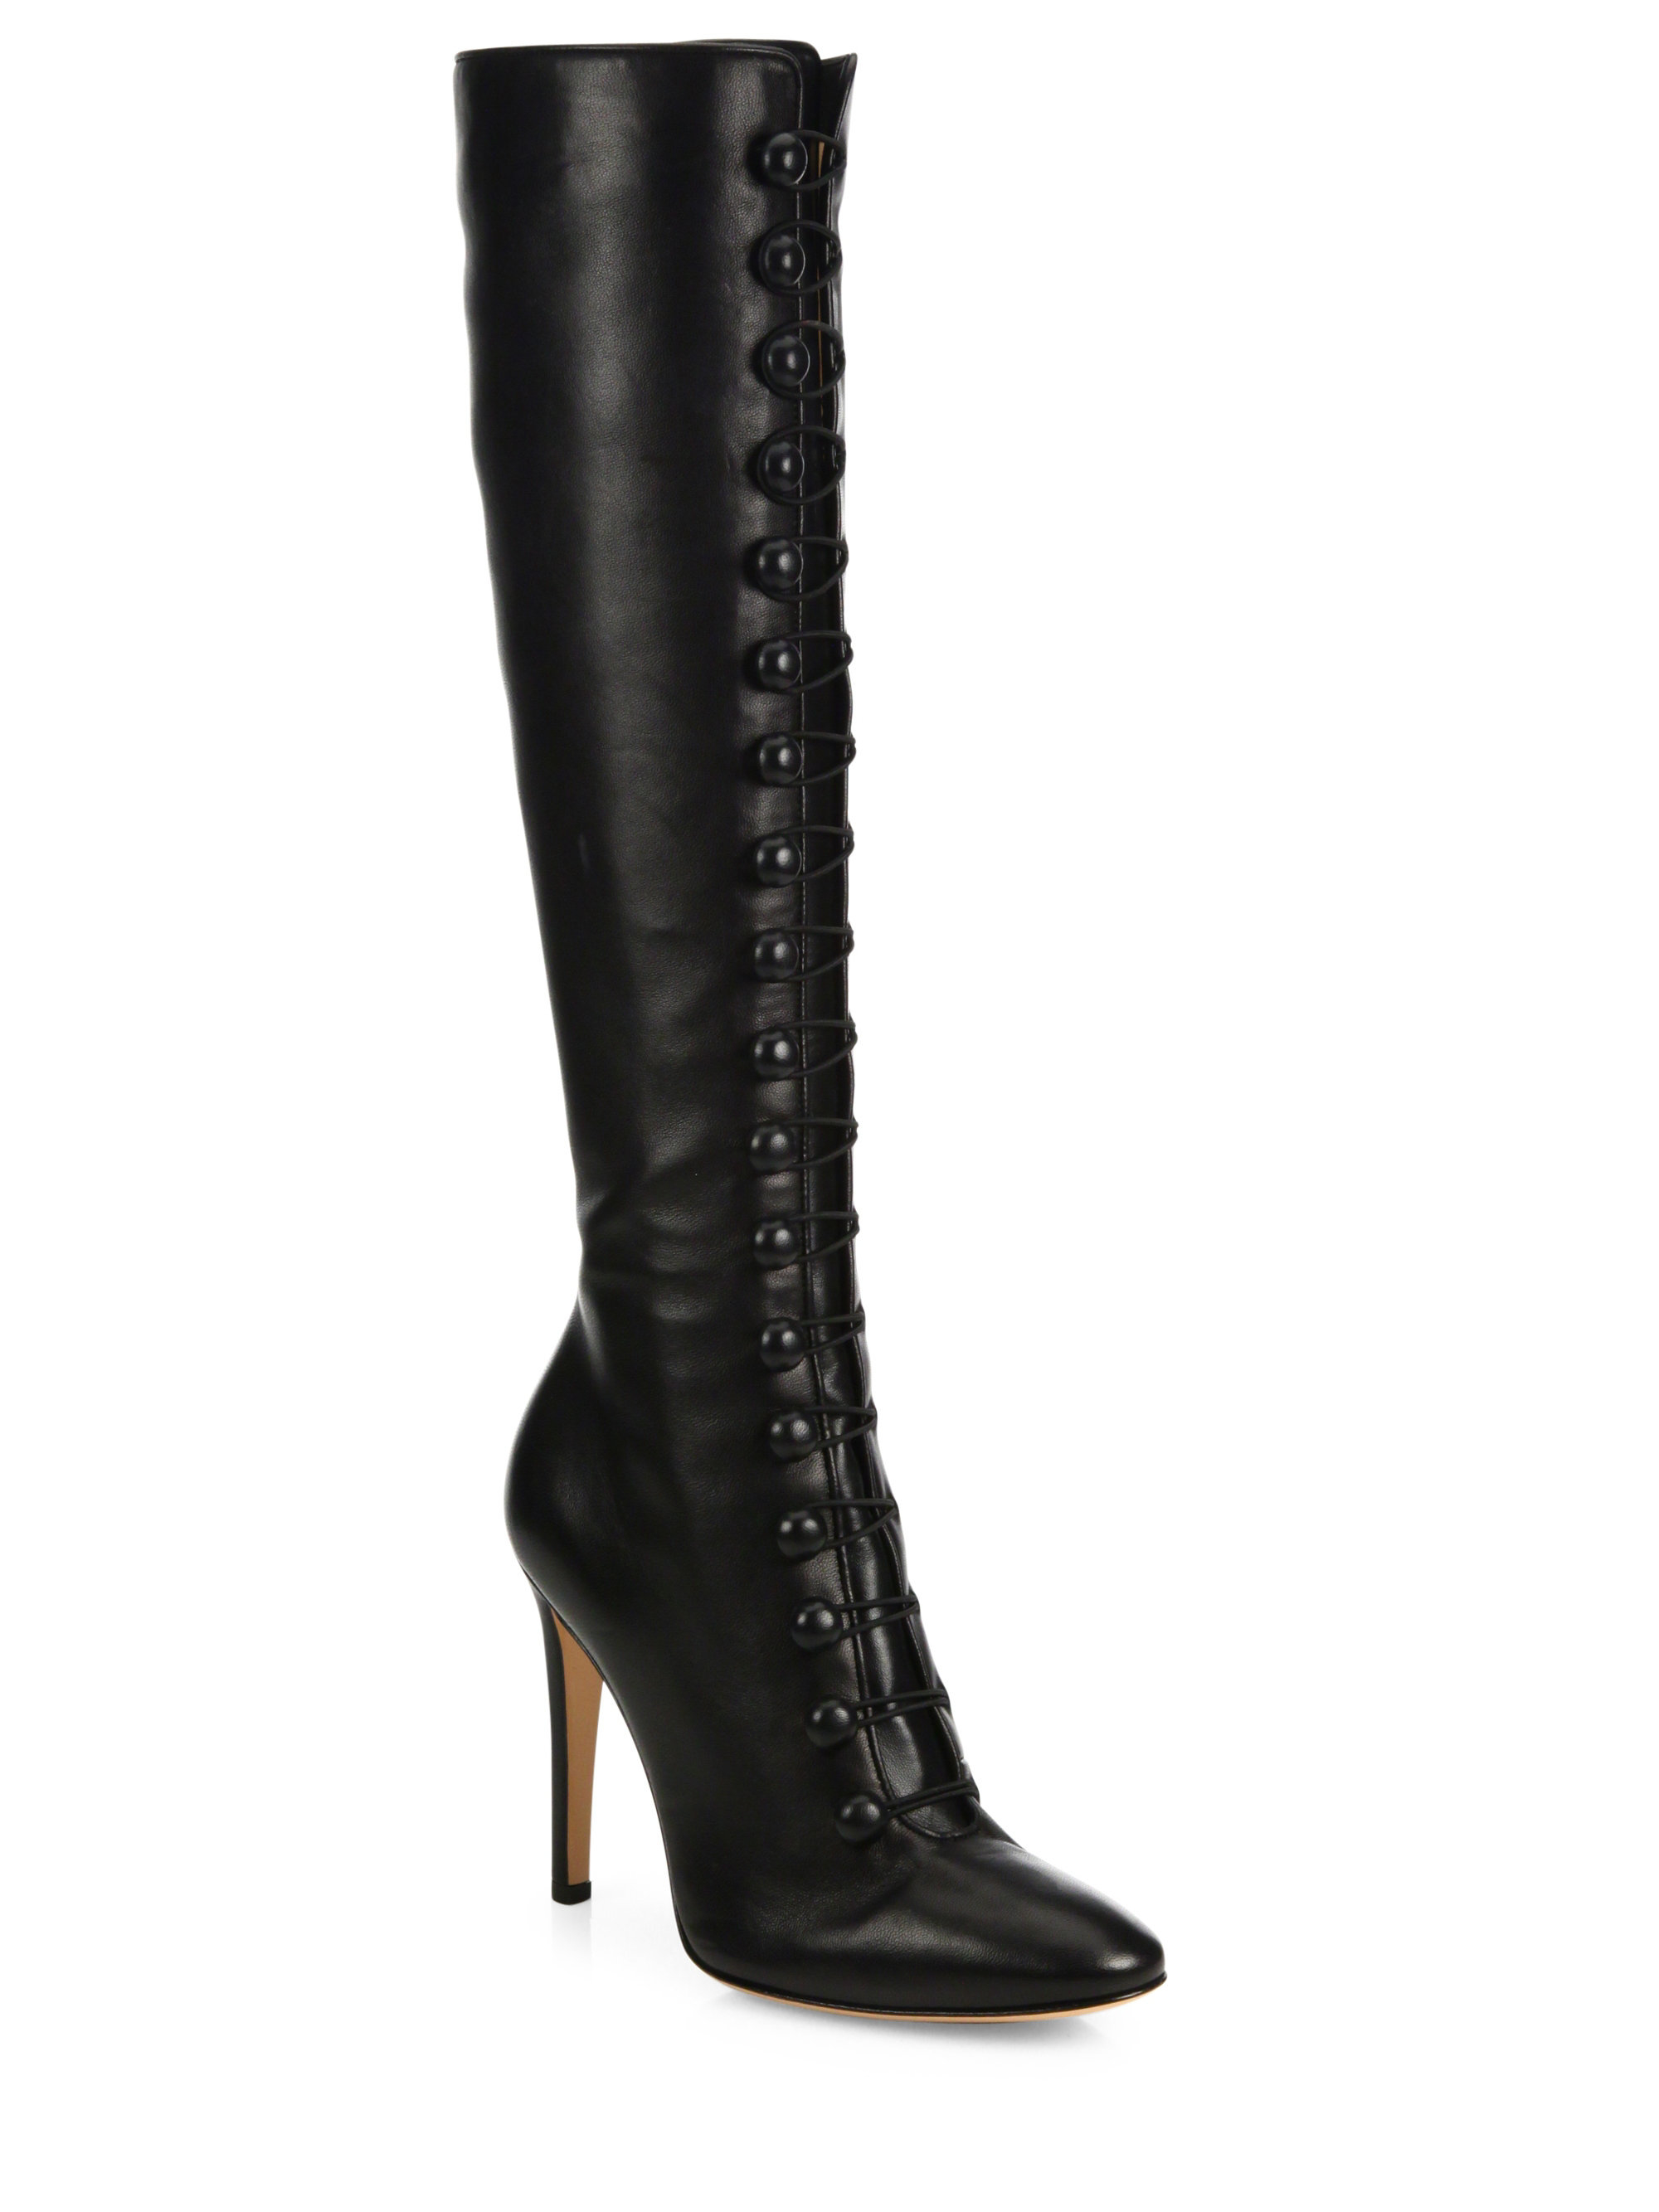 gianvito rossi imperia leather knee high boots in black lyst. Black Bedroom Furniture Sets. Home Design Ideas